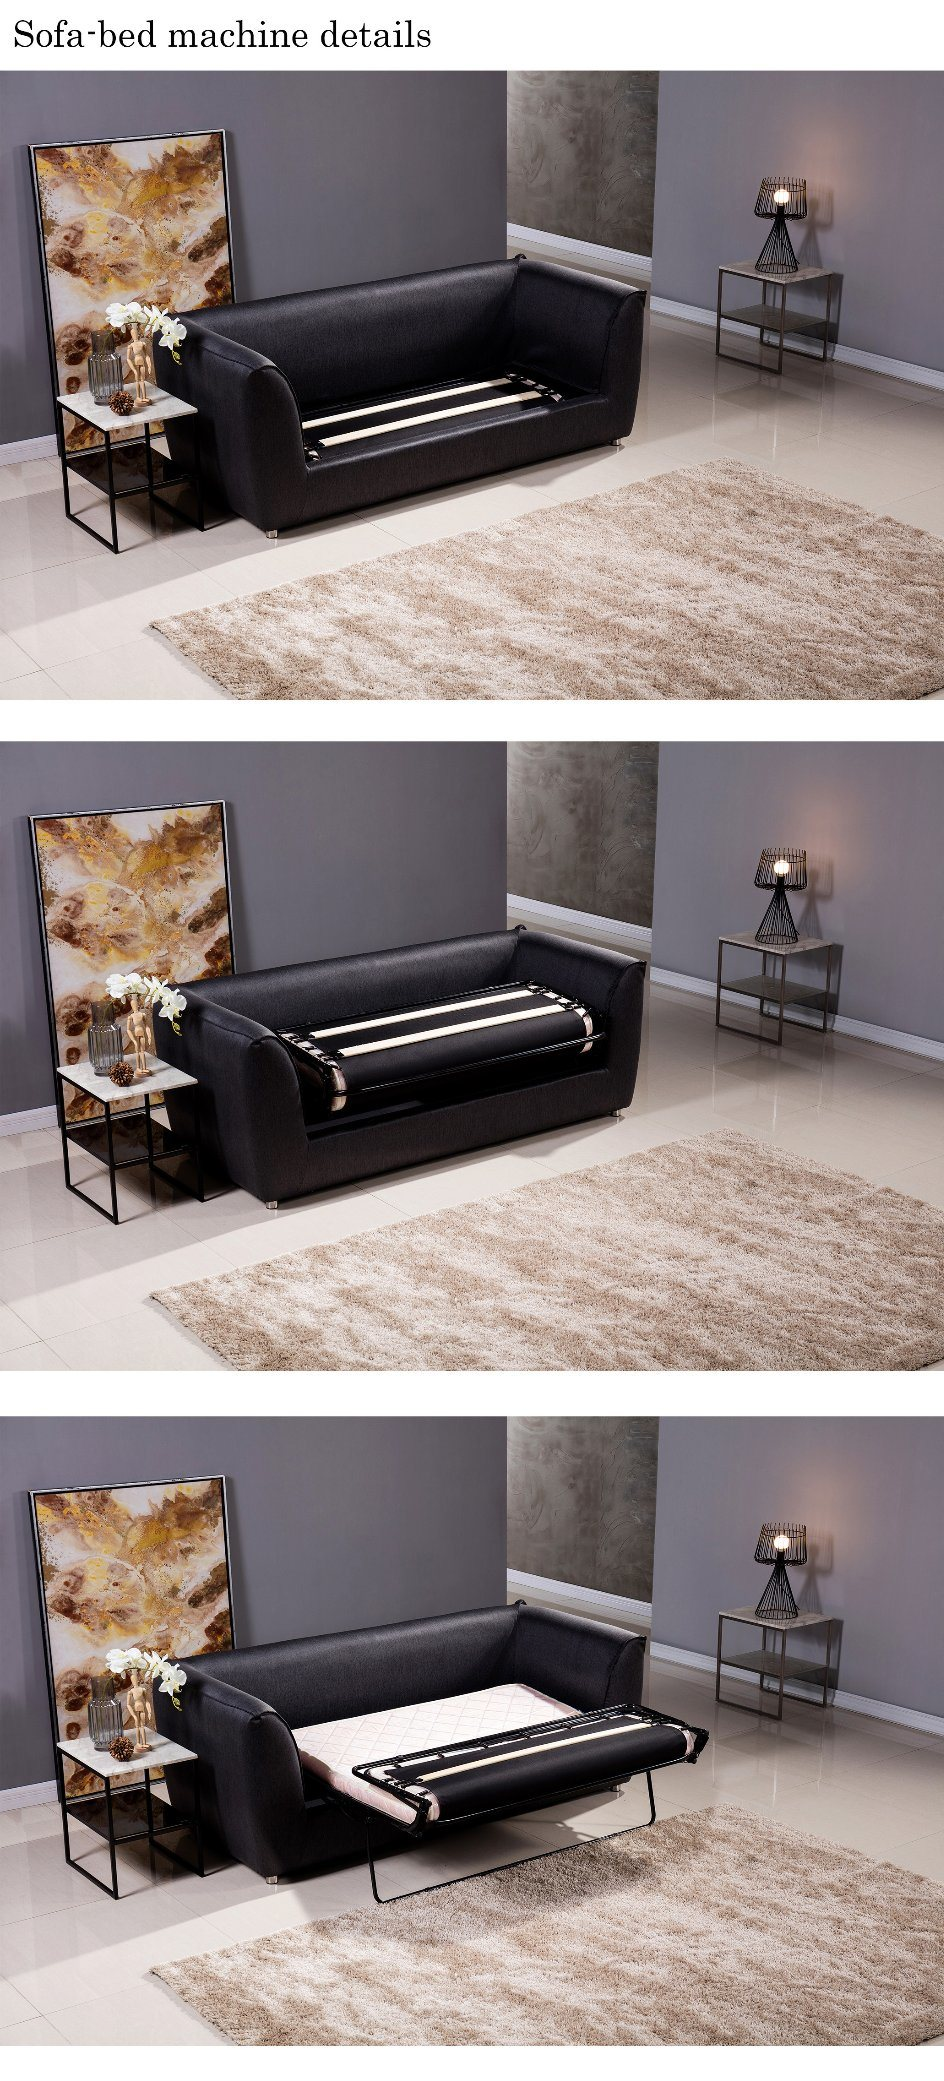 Malaysia Hot Selling Modern Floding Sofabed Sectional Sofa Cum Bed